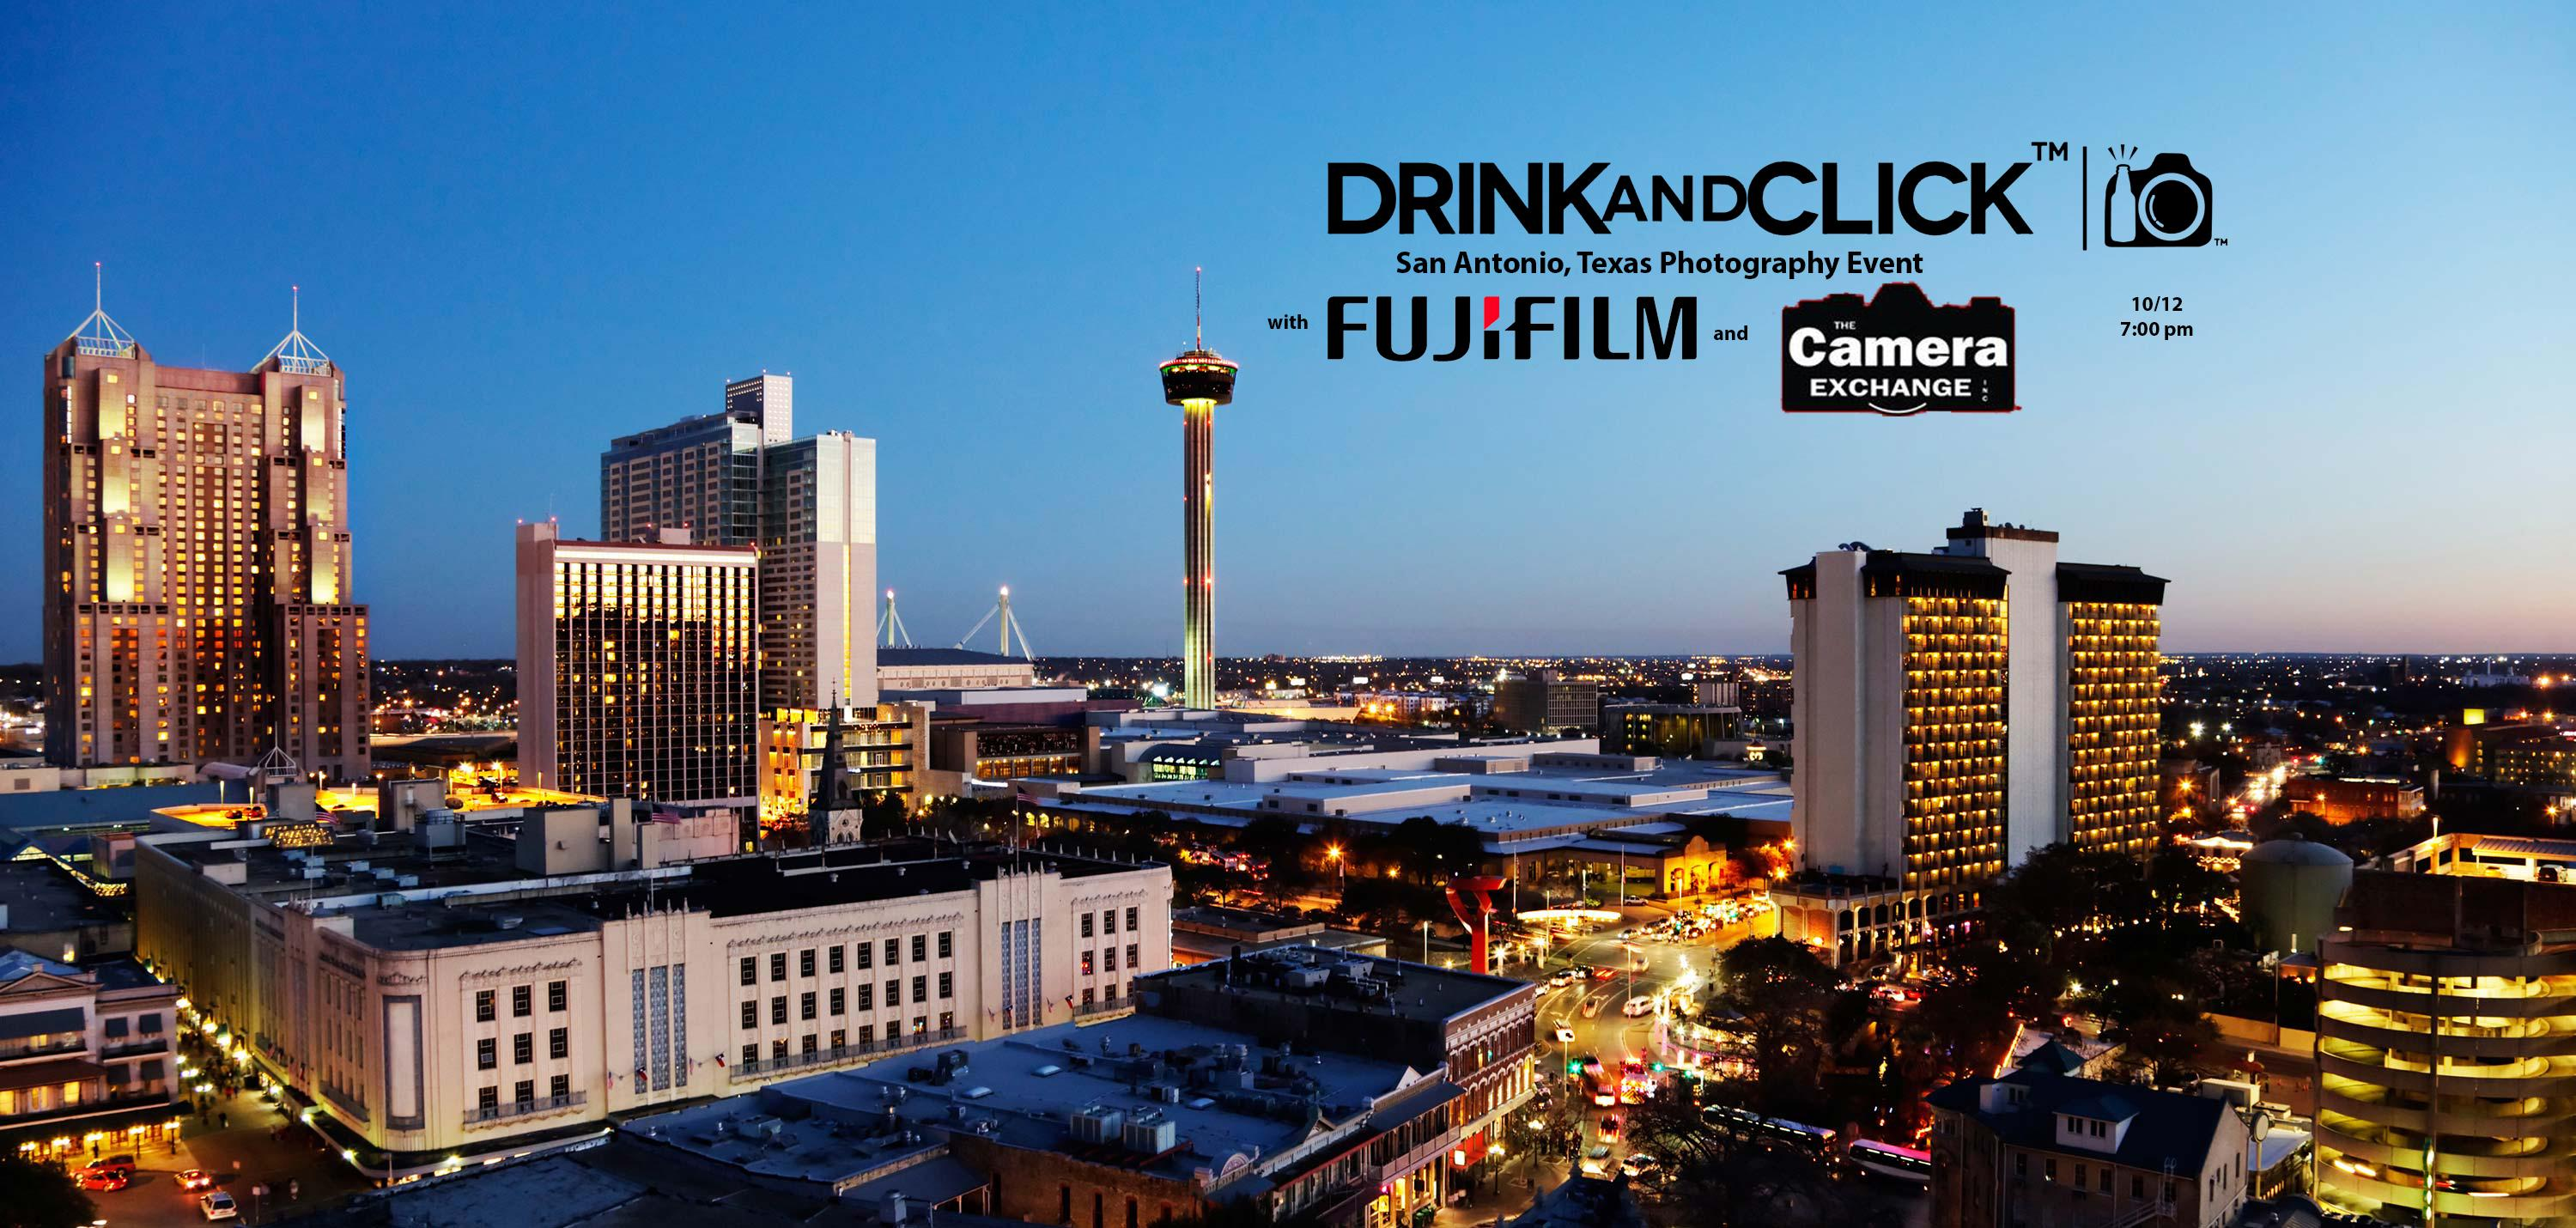 Drink and Click™ San Antonio, TX Event with Fujifilm and Camera Exchange